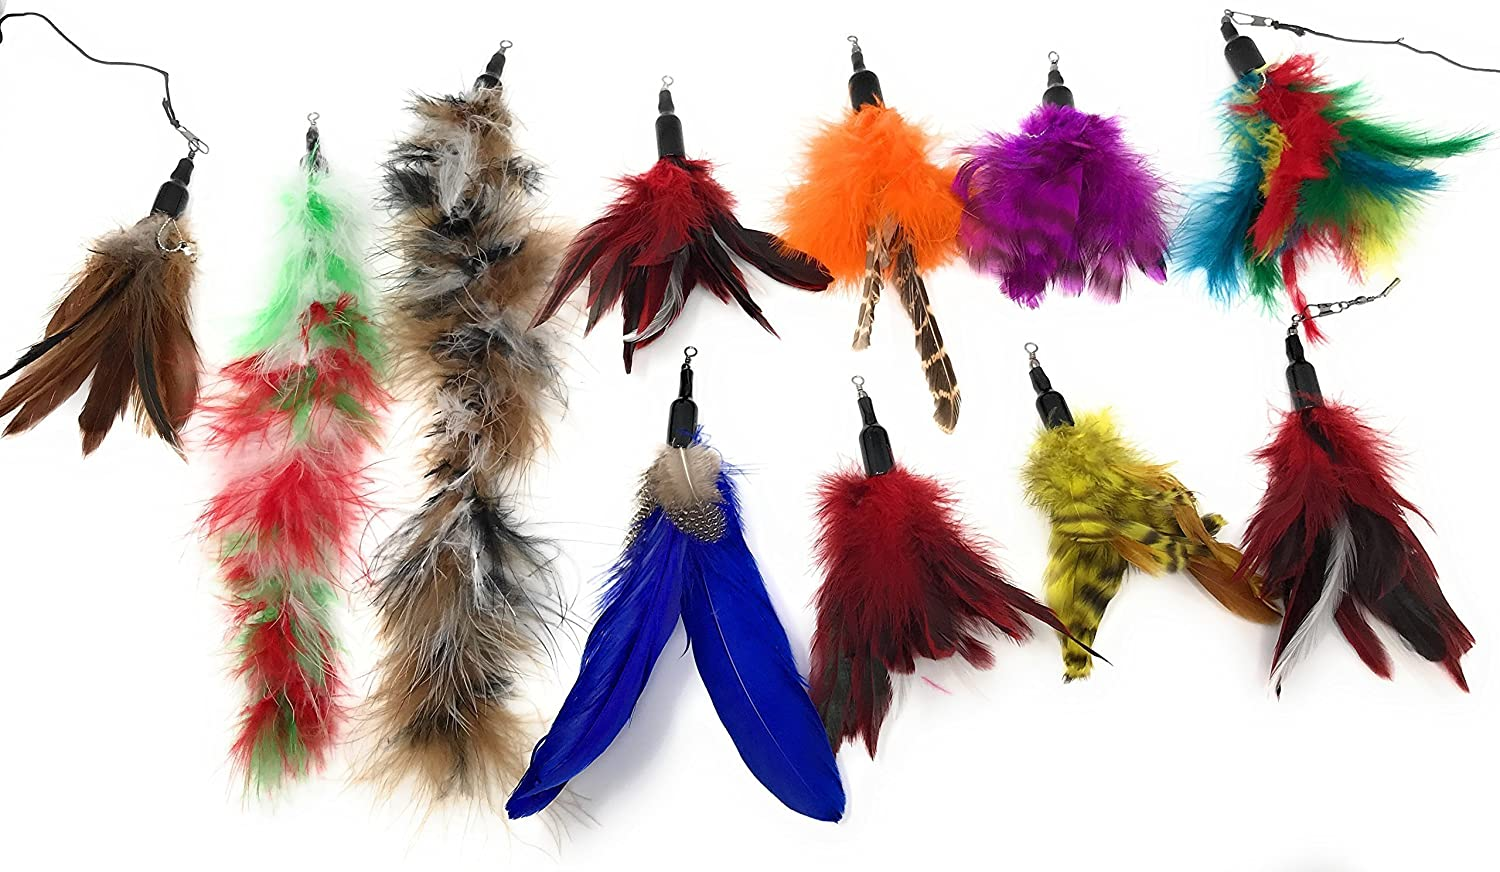 Amazon.com : Cat Feather Toy Cat Teaser Wands Interactive Toys For Kitty Retractable Fishing Rod - Natural Feather Refills With Teaser Wand-14 Pcs Cat Pet ...